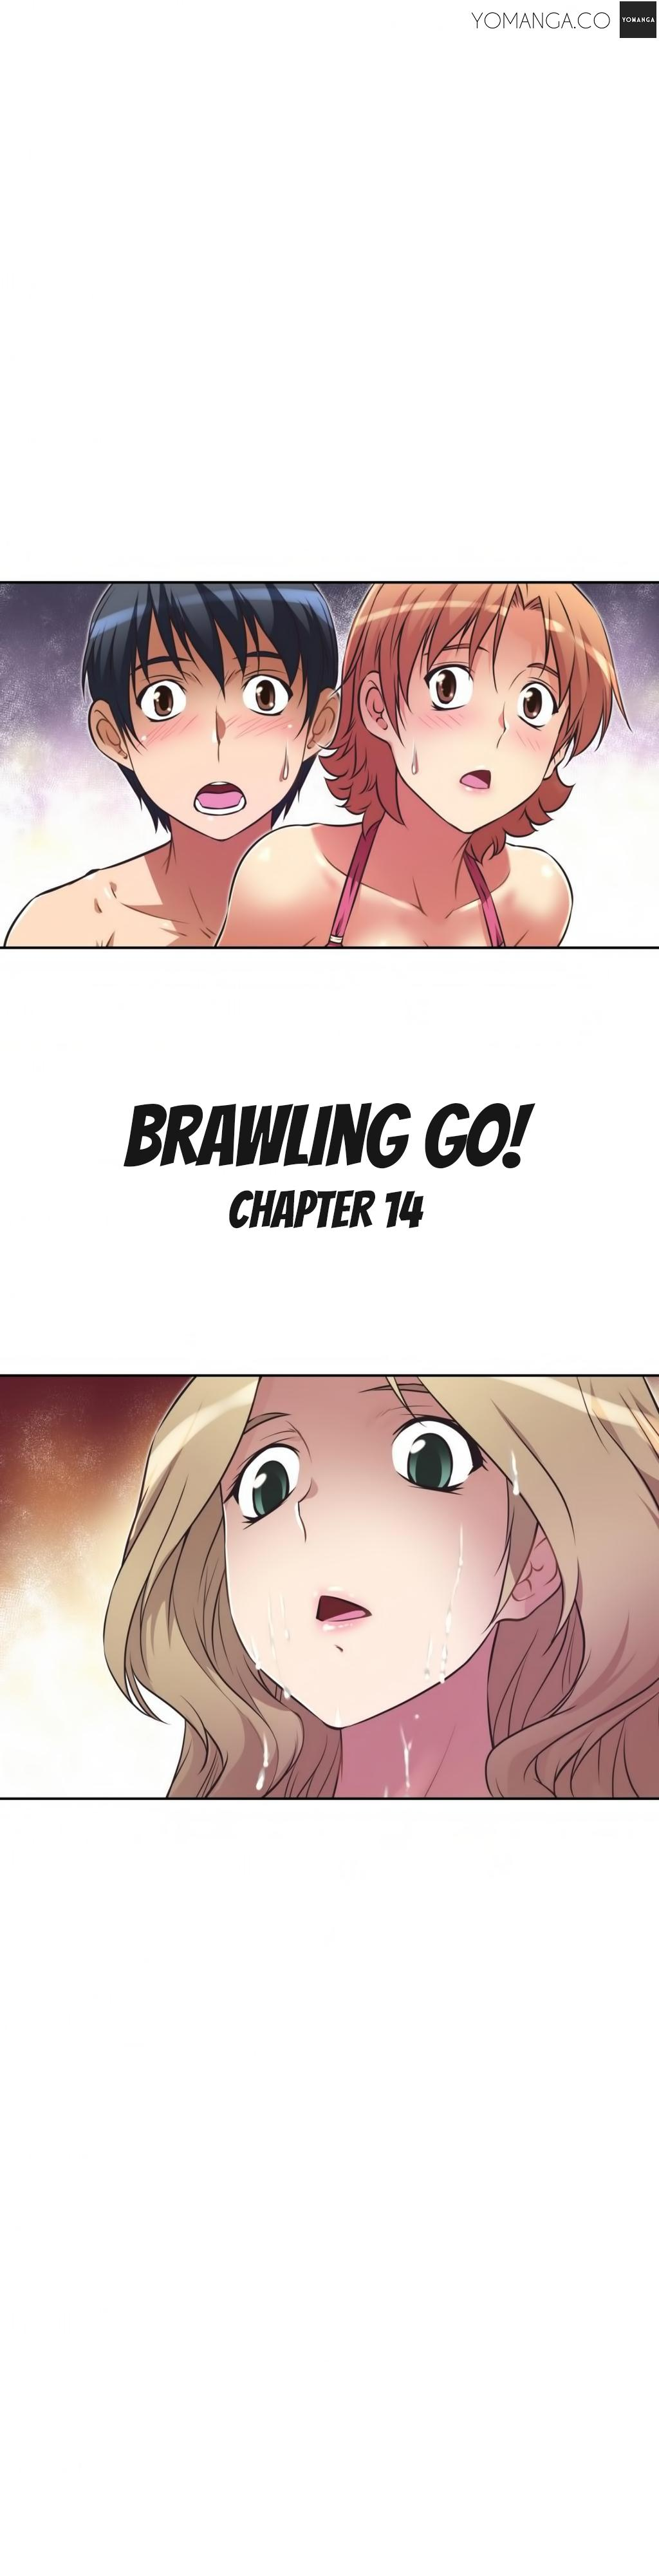 Brawling Go 0-15 Chapters 468